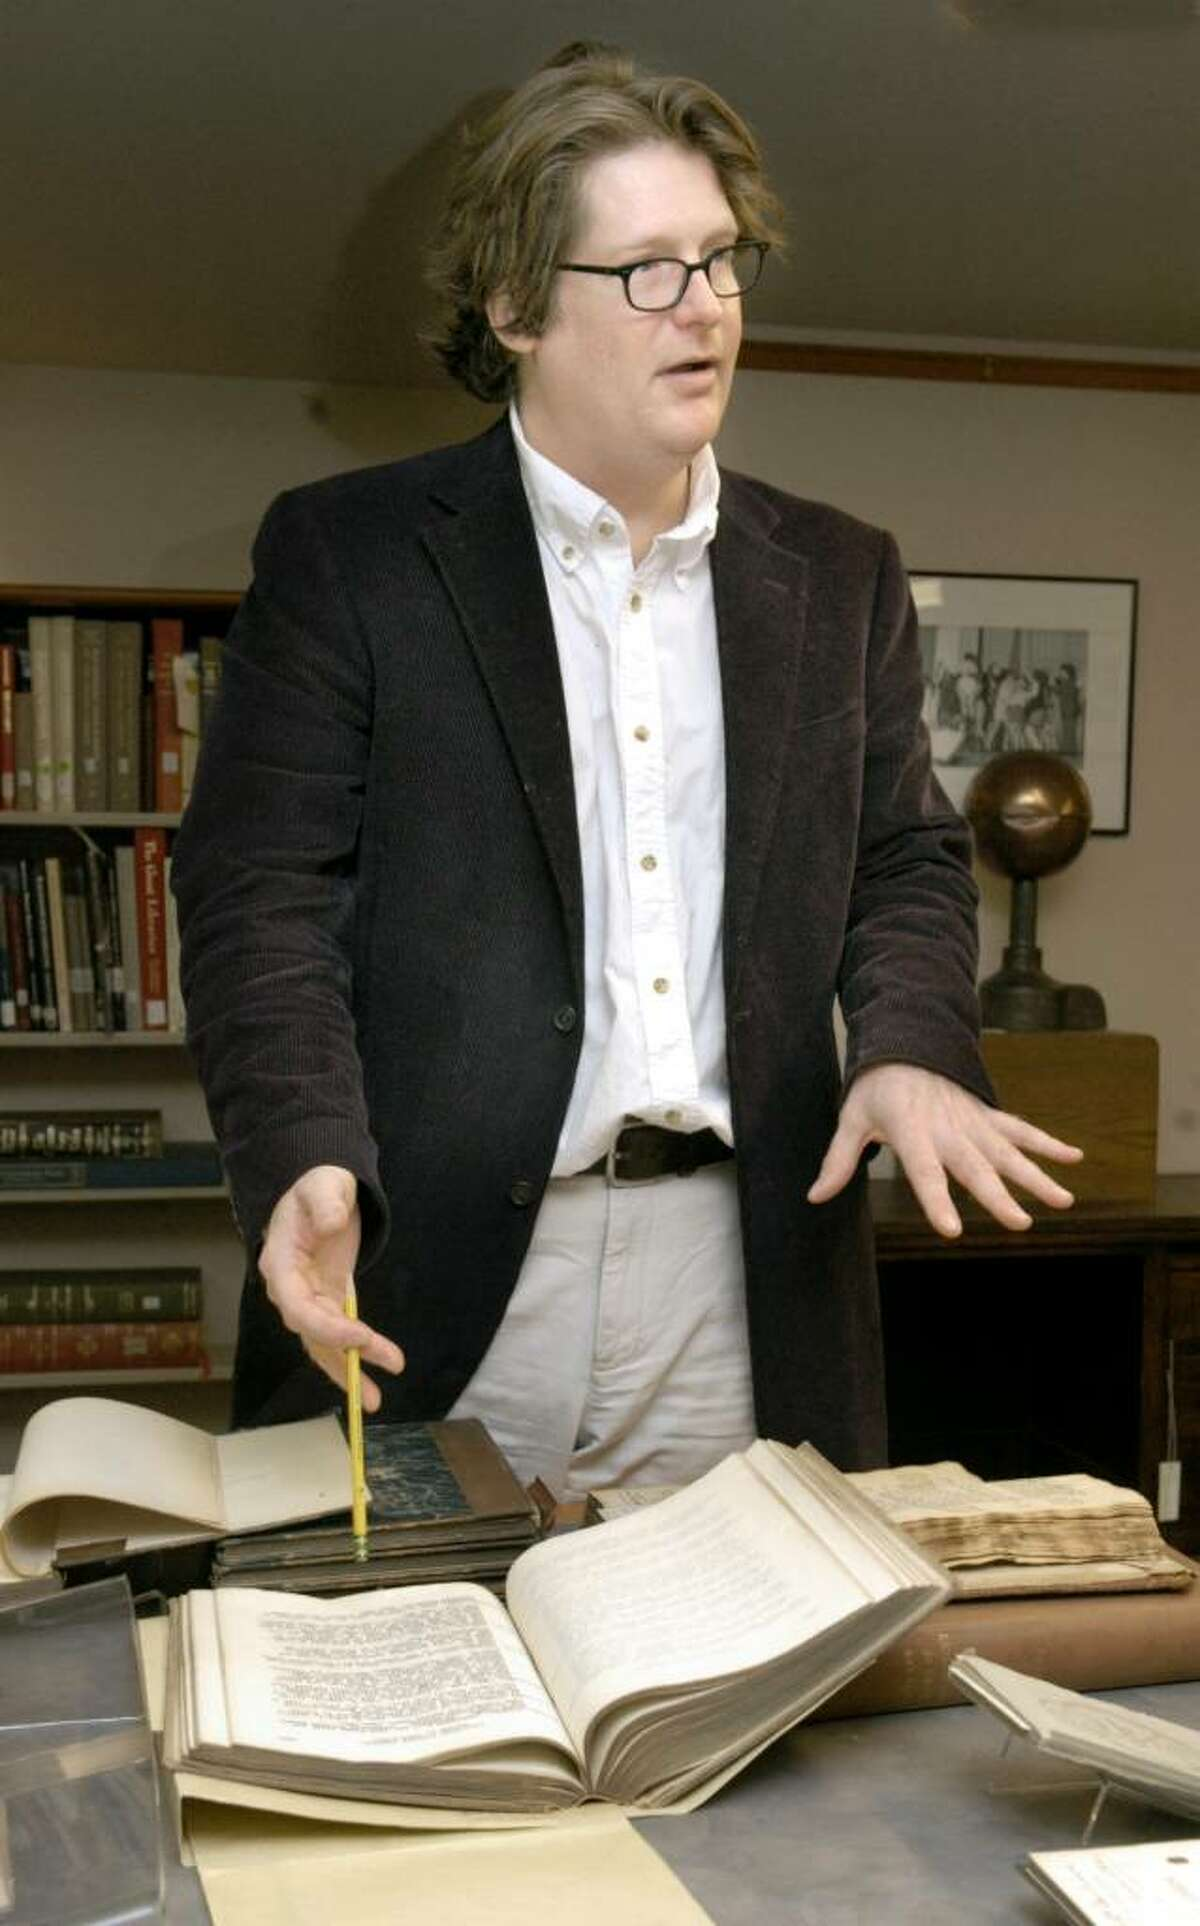 Brian Stevens, archivist for Western Connecticut State University, talks about a collection of books about Connecticut history from the 1800's.